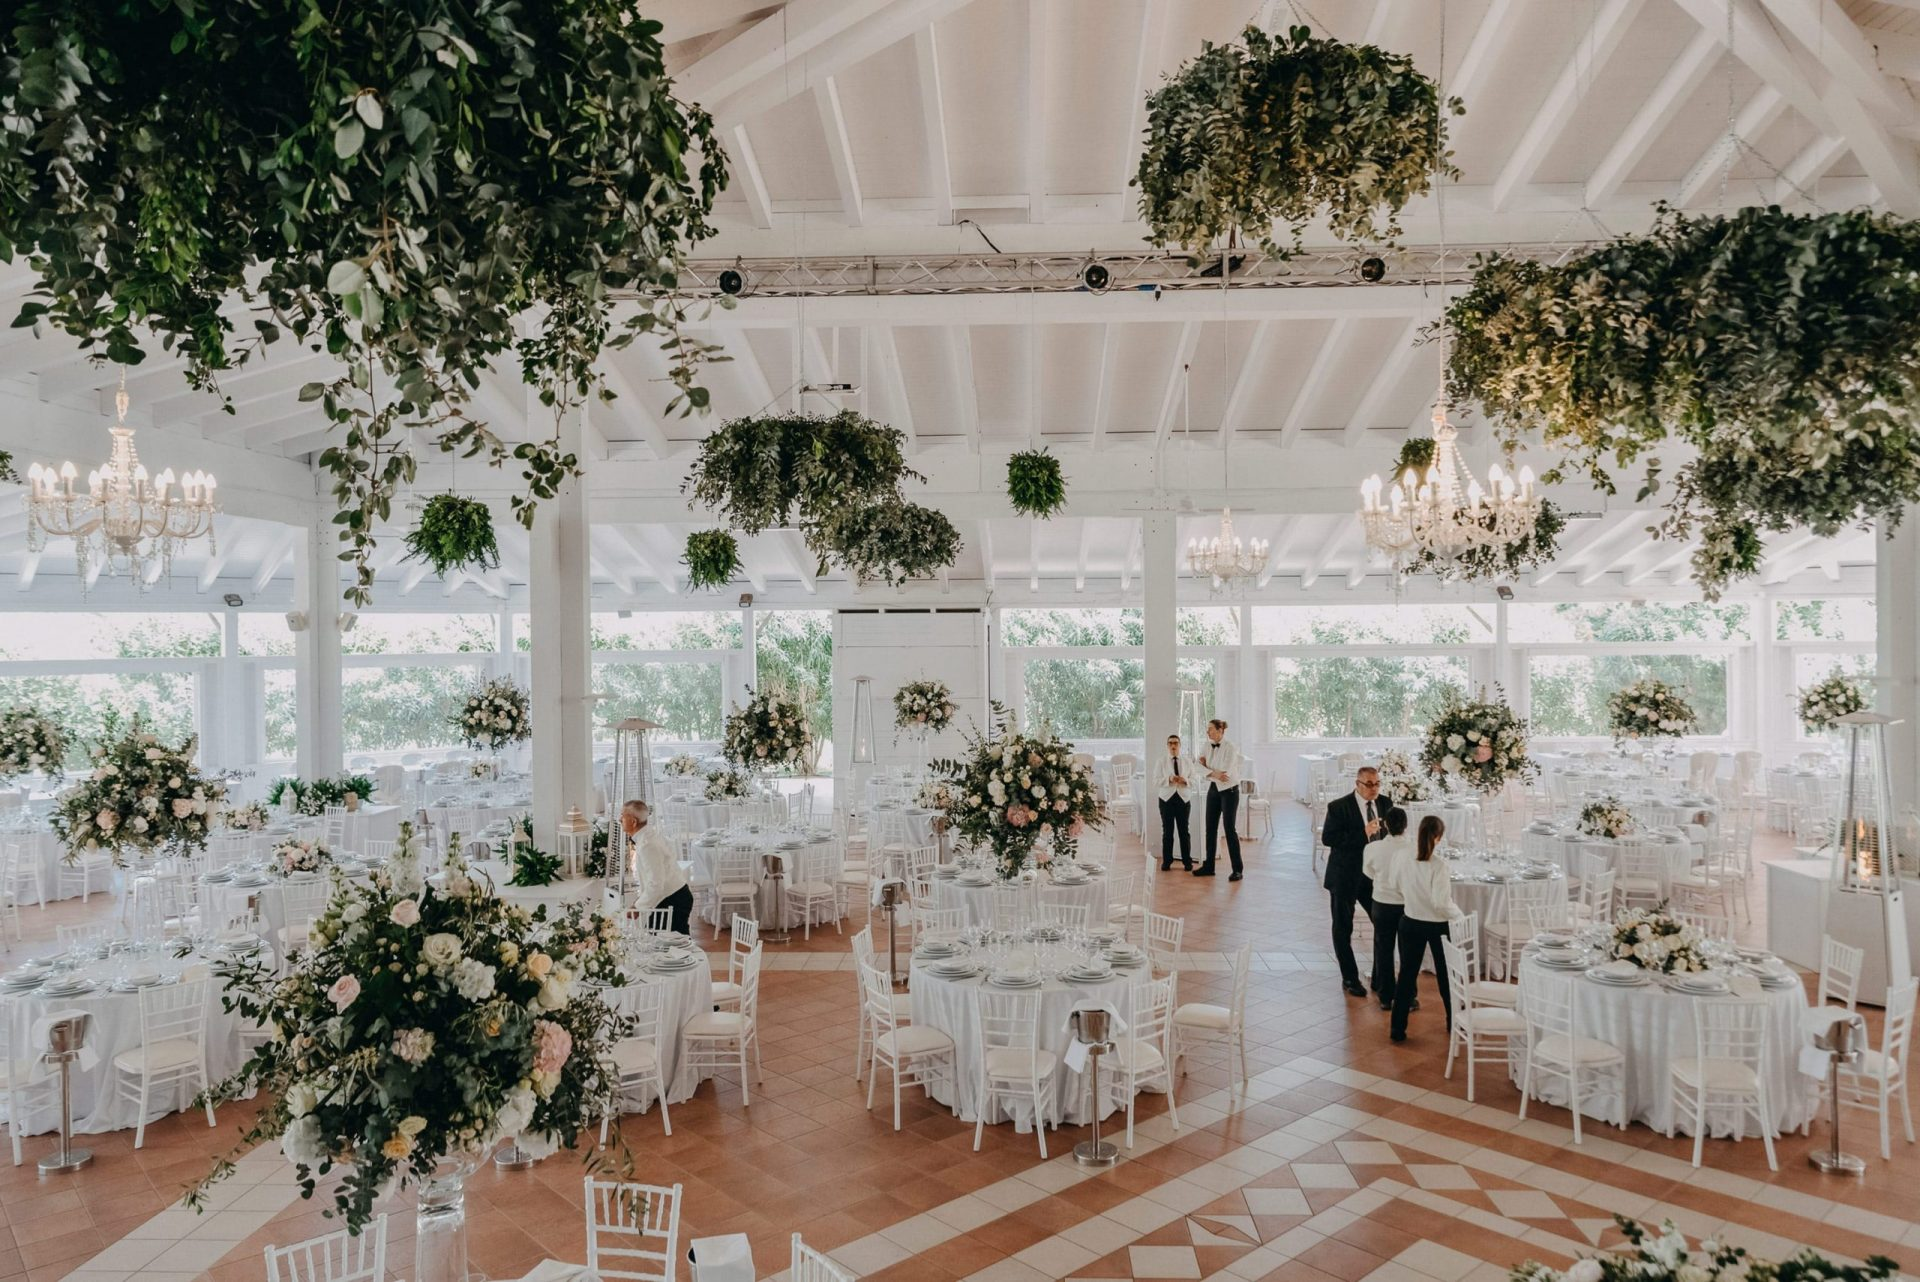 Giacomo and Federica, green sophisticated wedding reception